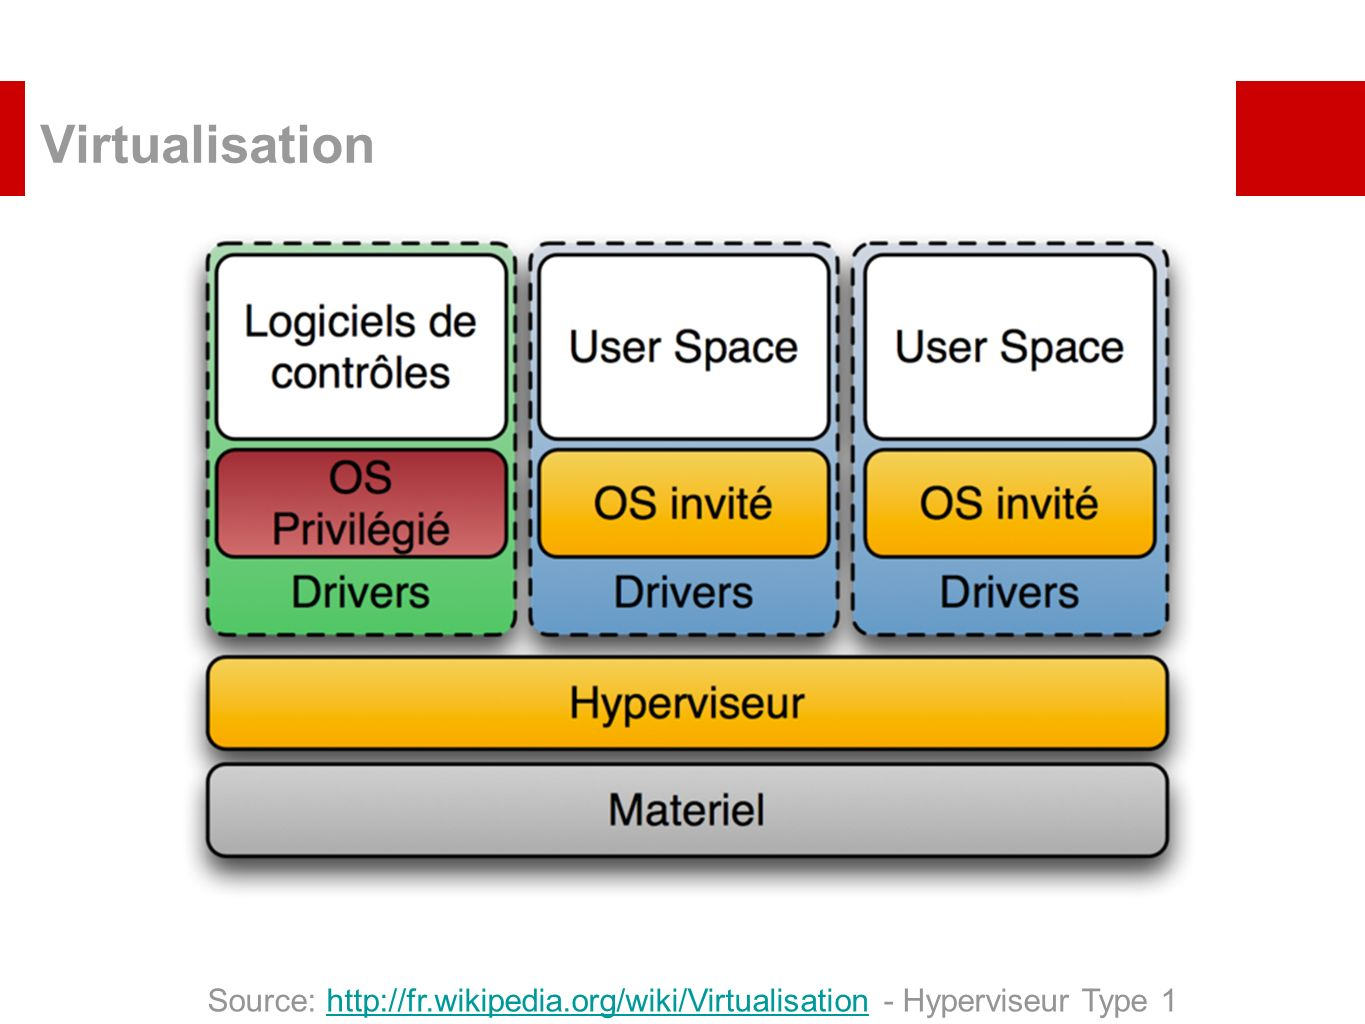 Virtualisation Source: http://fr.wikipedia.org/wiki/Virtualisation - Hyperviseur Type 1http://fr.wikipedia.org/wiki/Virtualisation